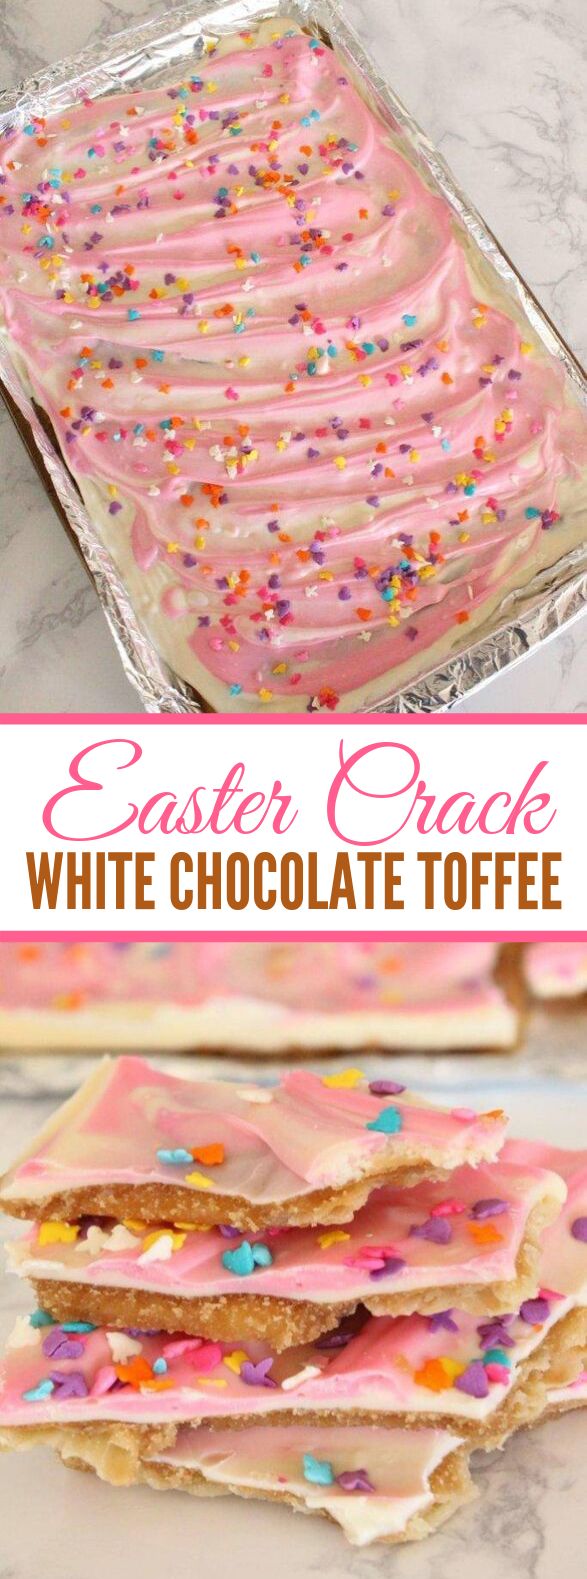 Easter Crack White Chocolate Toffee Recipe #desserts #sweets